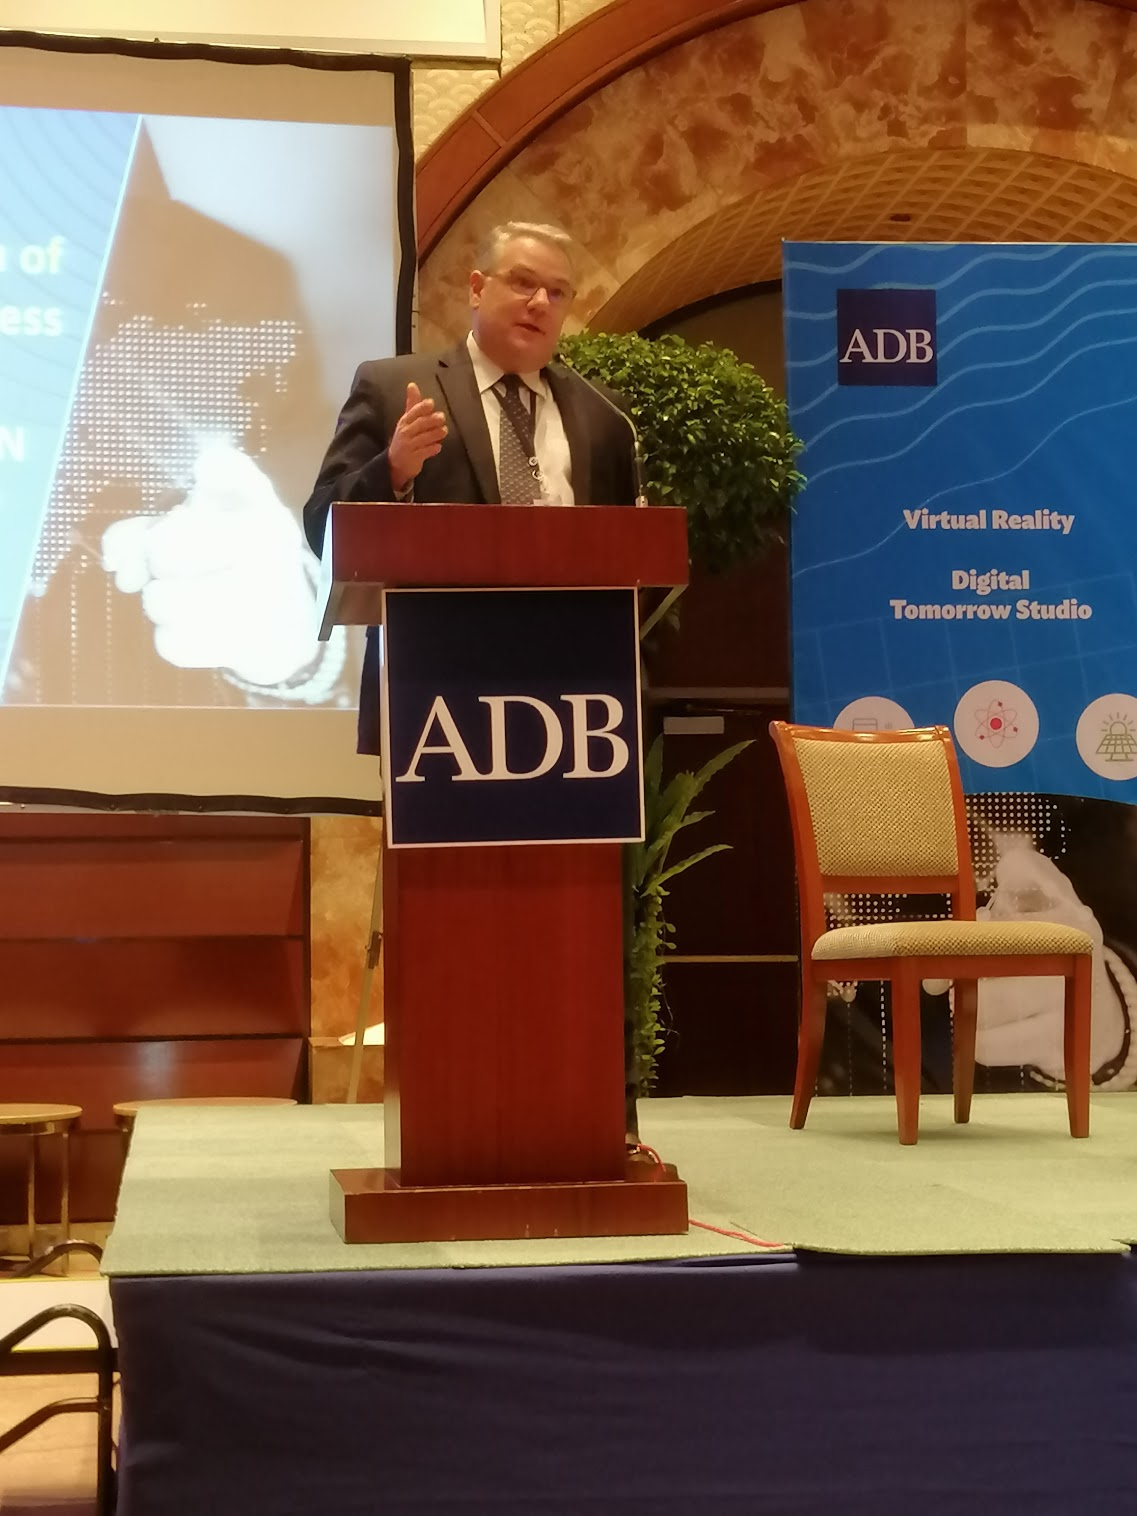 """3:45 p.m. - """"Knowledge formation is about learning.""""Albert Atkinson, DOC, talks about Channeling ADB's Stream of Consciousness for Future Stories from ADB"""